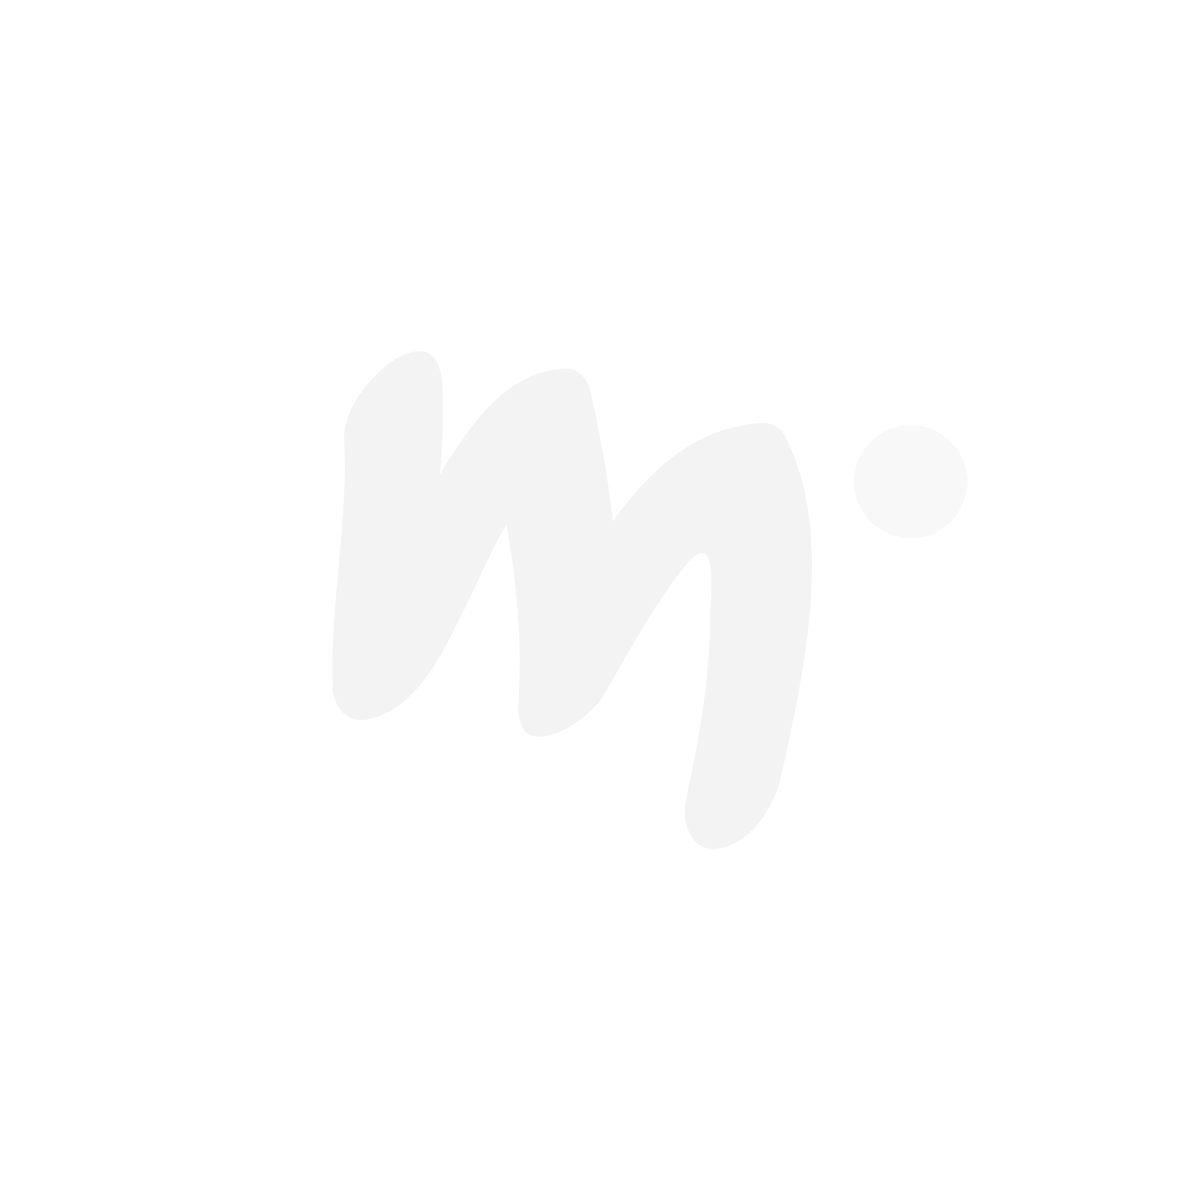 Moomin Stinky Sweatshirt black